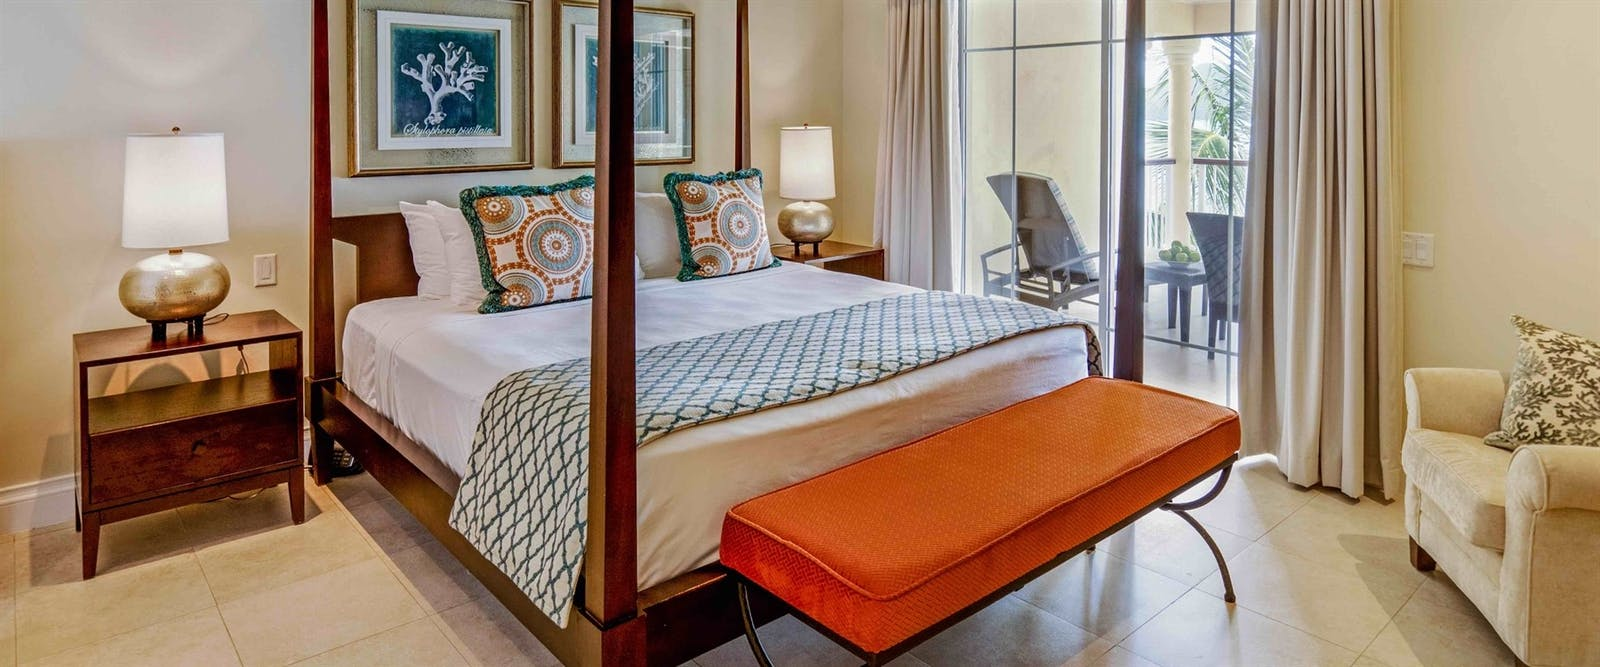 Master Bedroom at The Landings Resort and Spa by Elegant Hotels, St Lucia